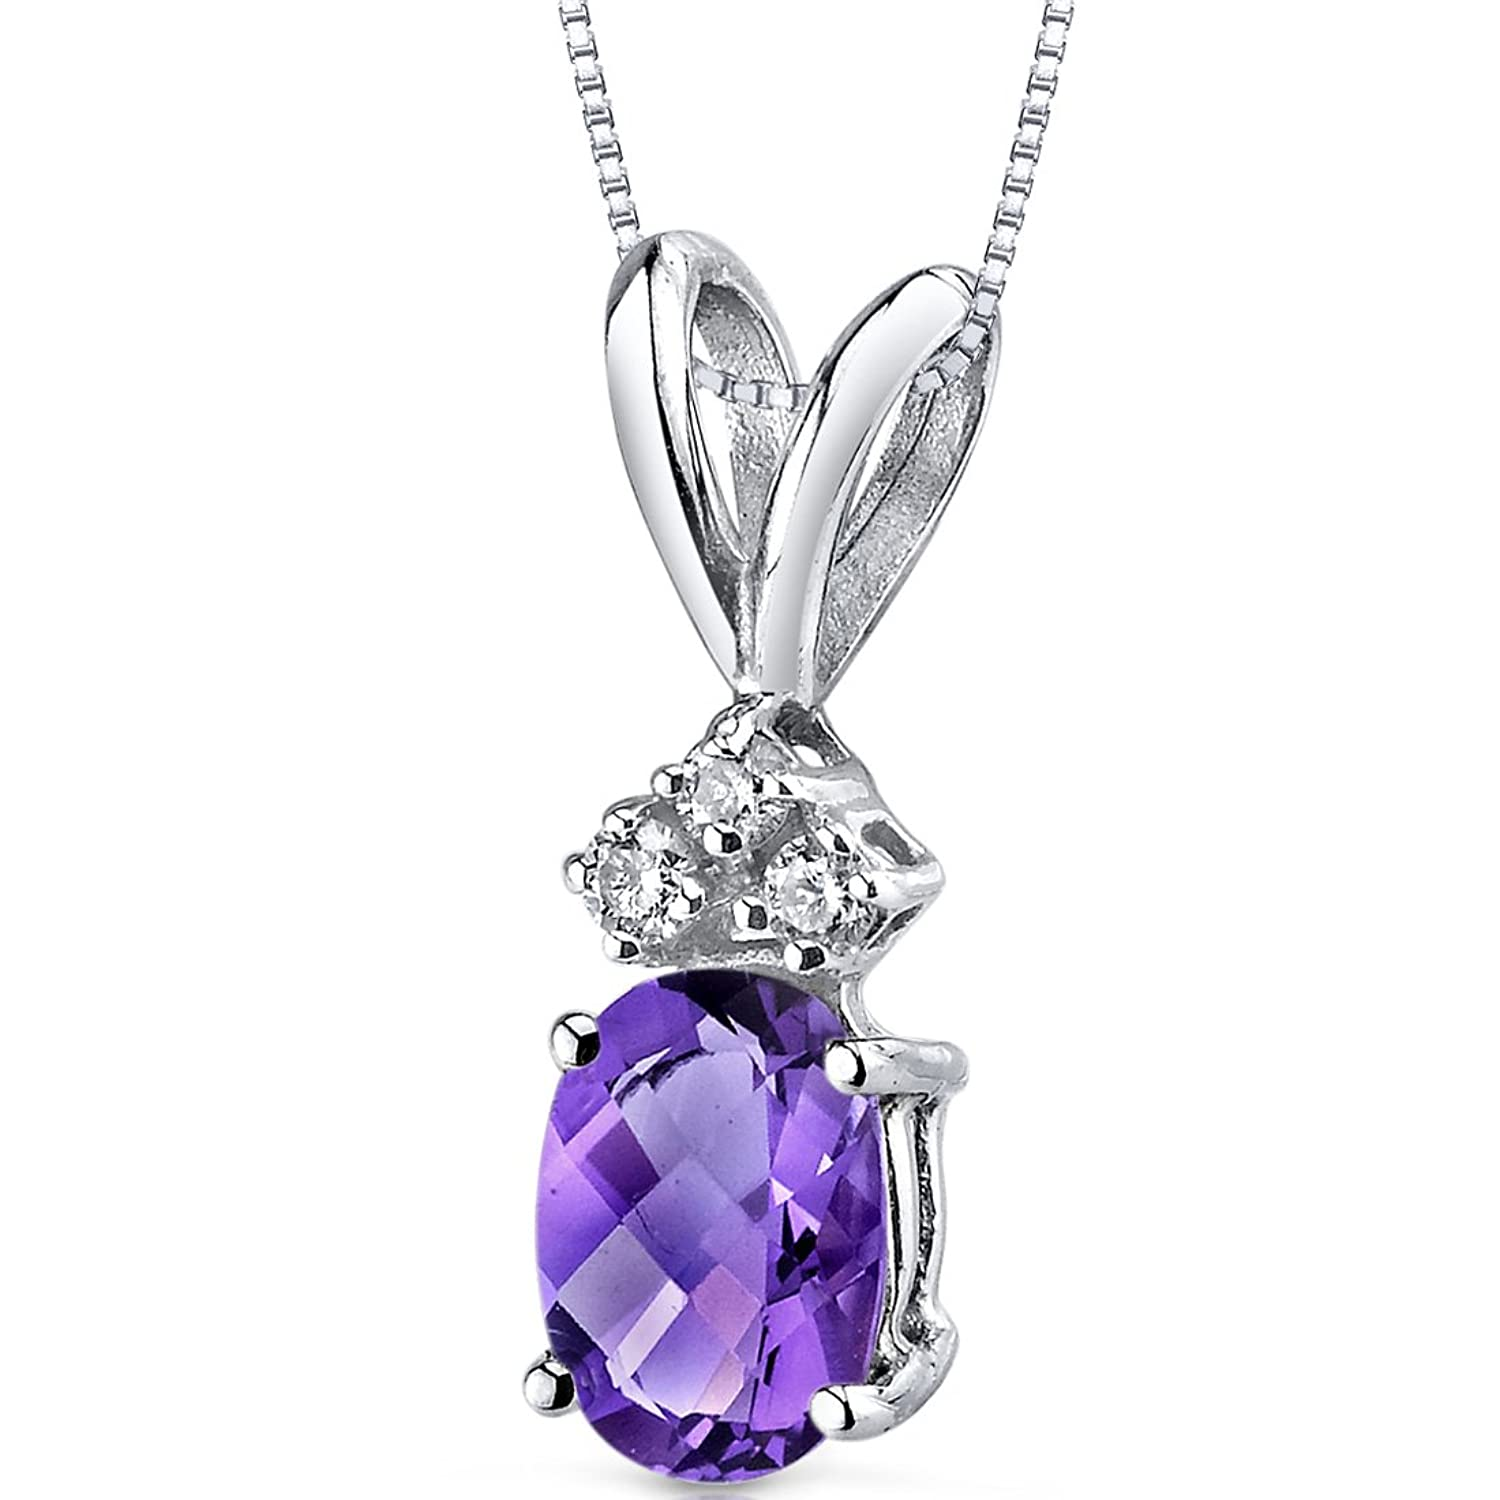 14 Karat White Gold Oval Shape 0.75 Carats Amethyst Diamond Pendant